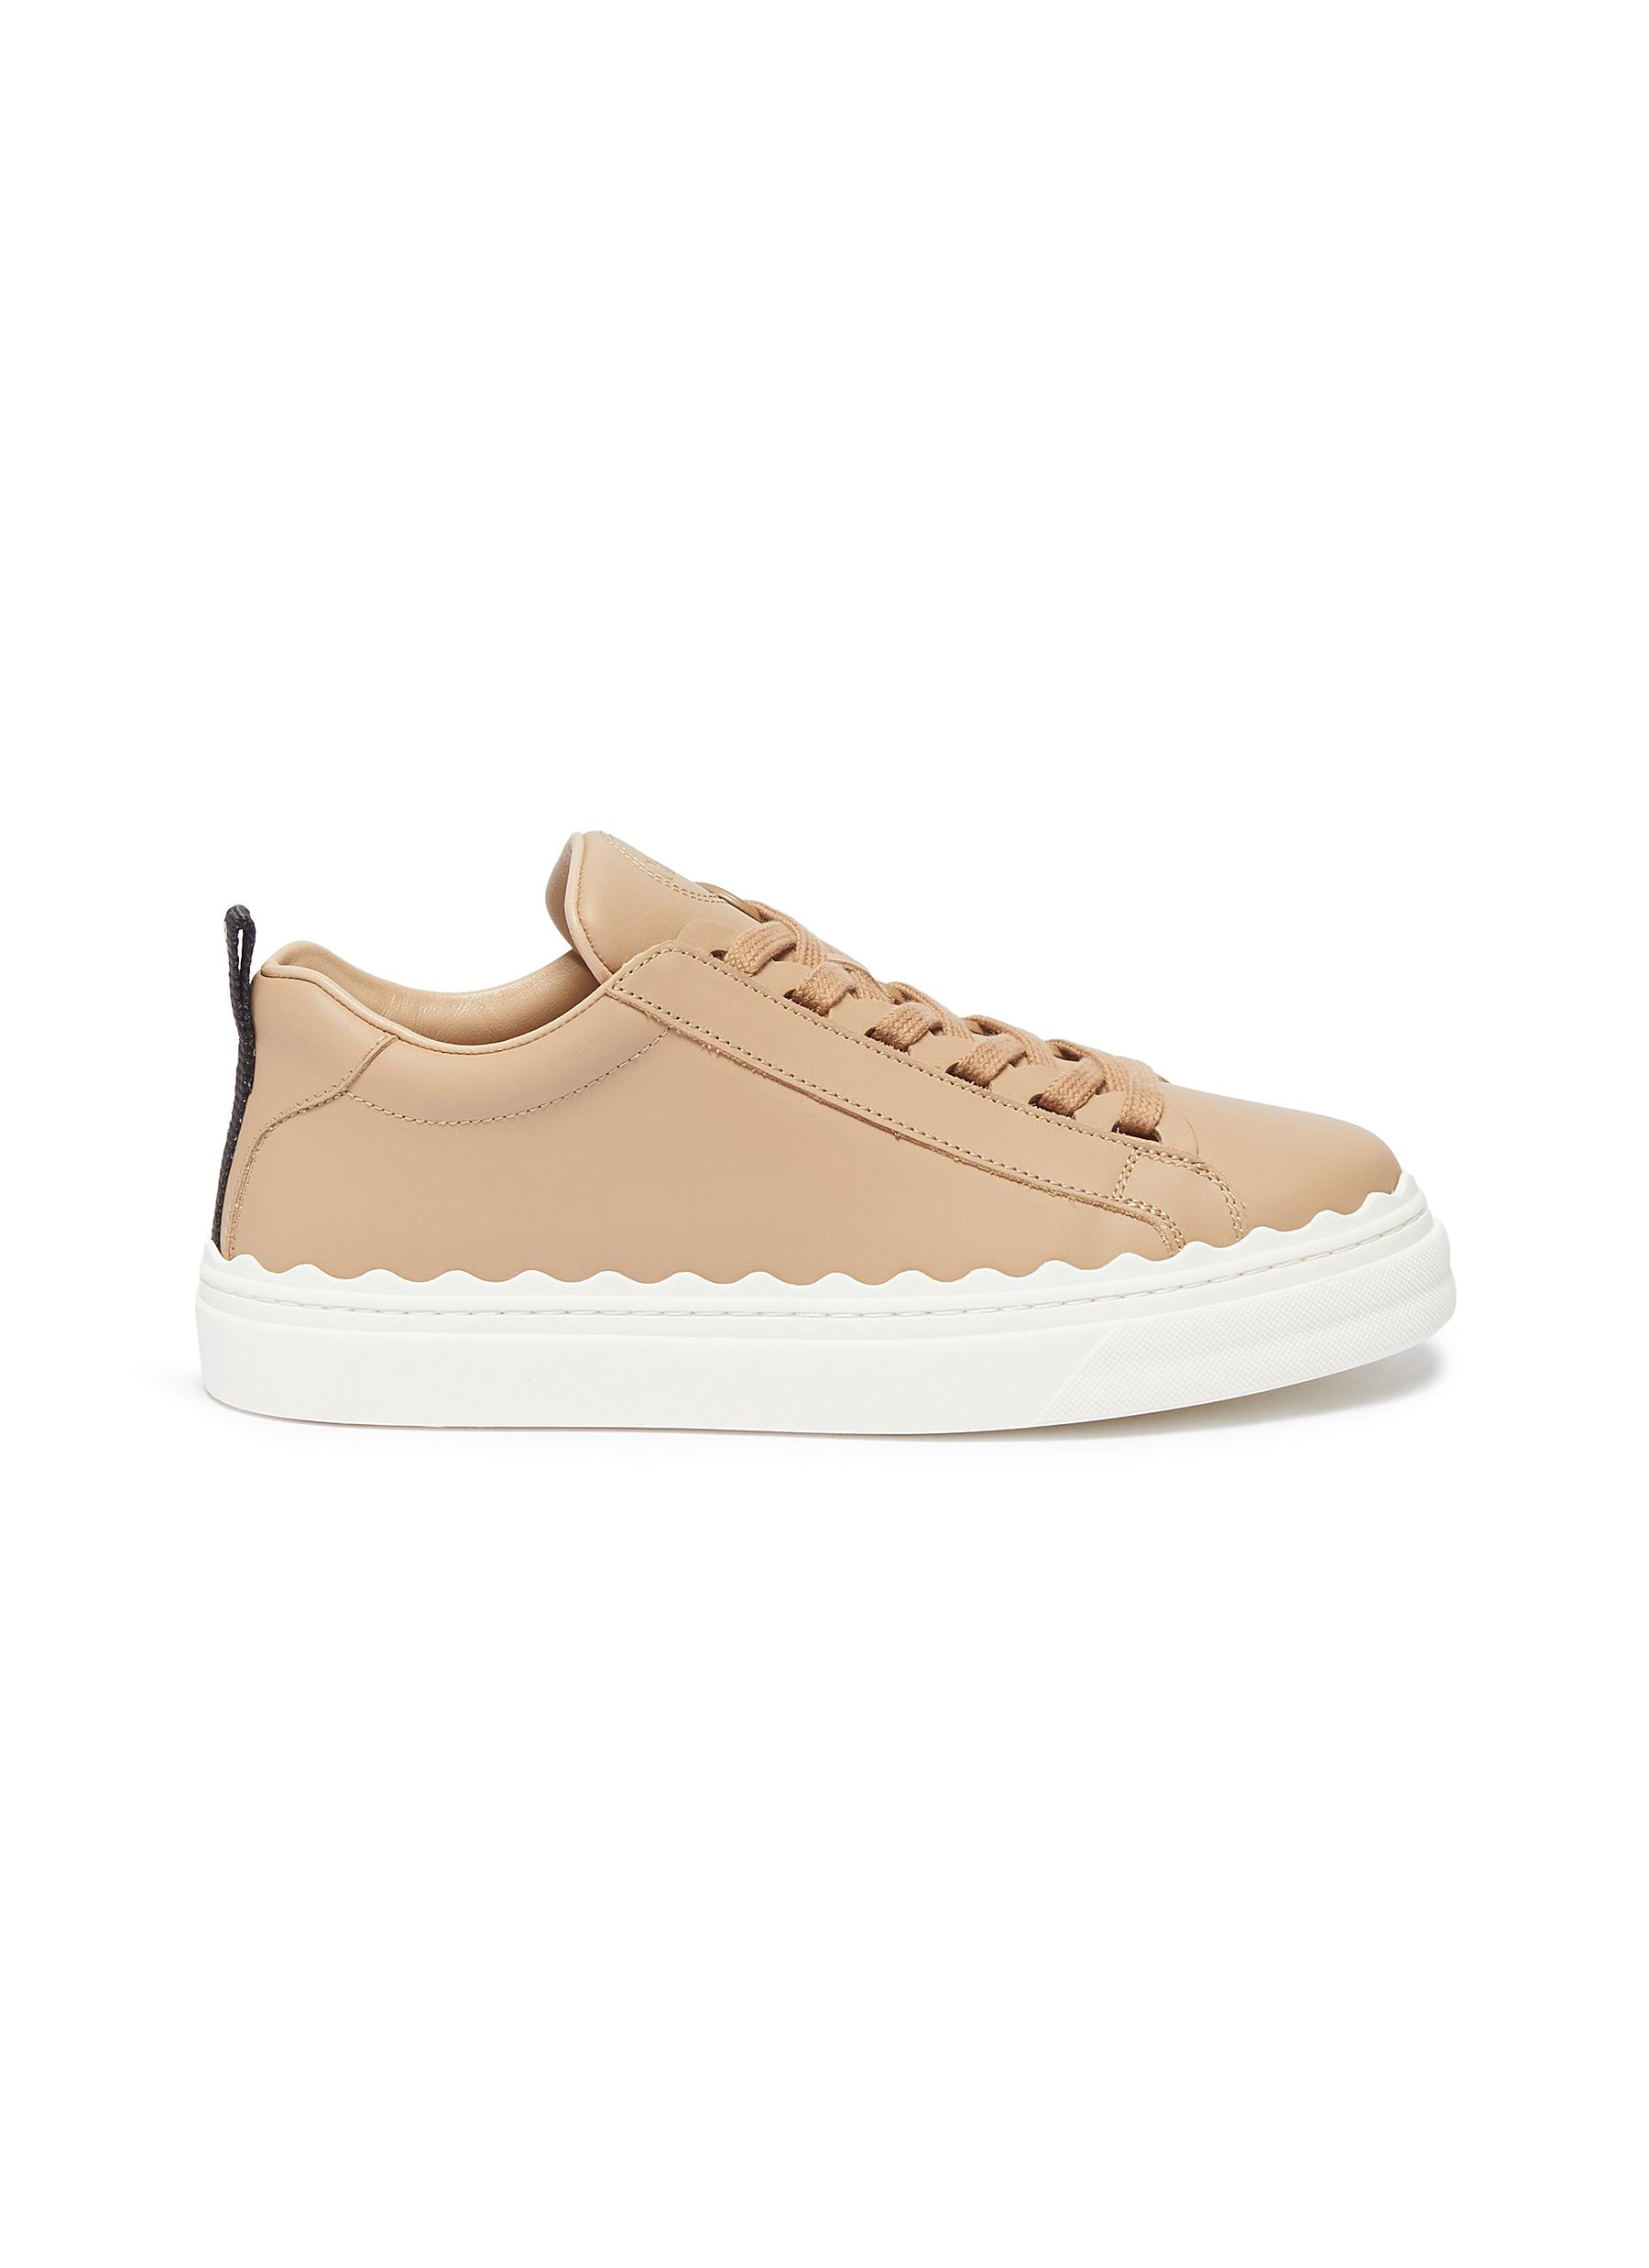 Lauren scalloped midsole leather sneakers by Chloé